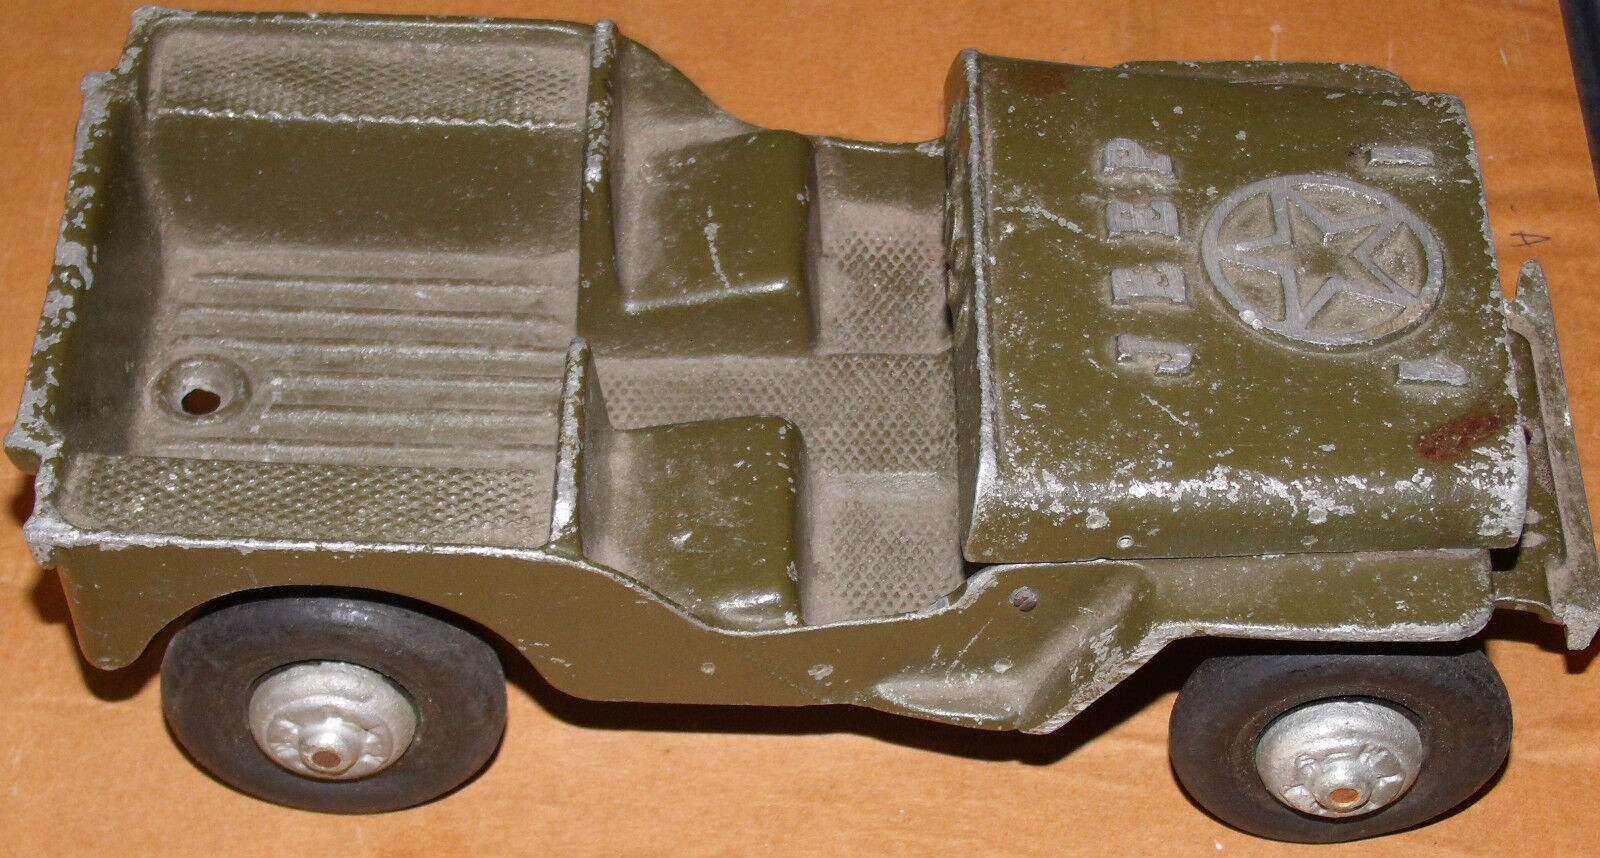 OGLESBY WILLYS JEEP   1950s -- RARE ORIGINAL  OLIVE DRAB GREEN PERU INDIANA